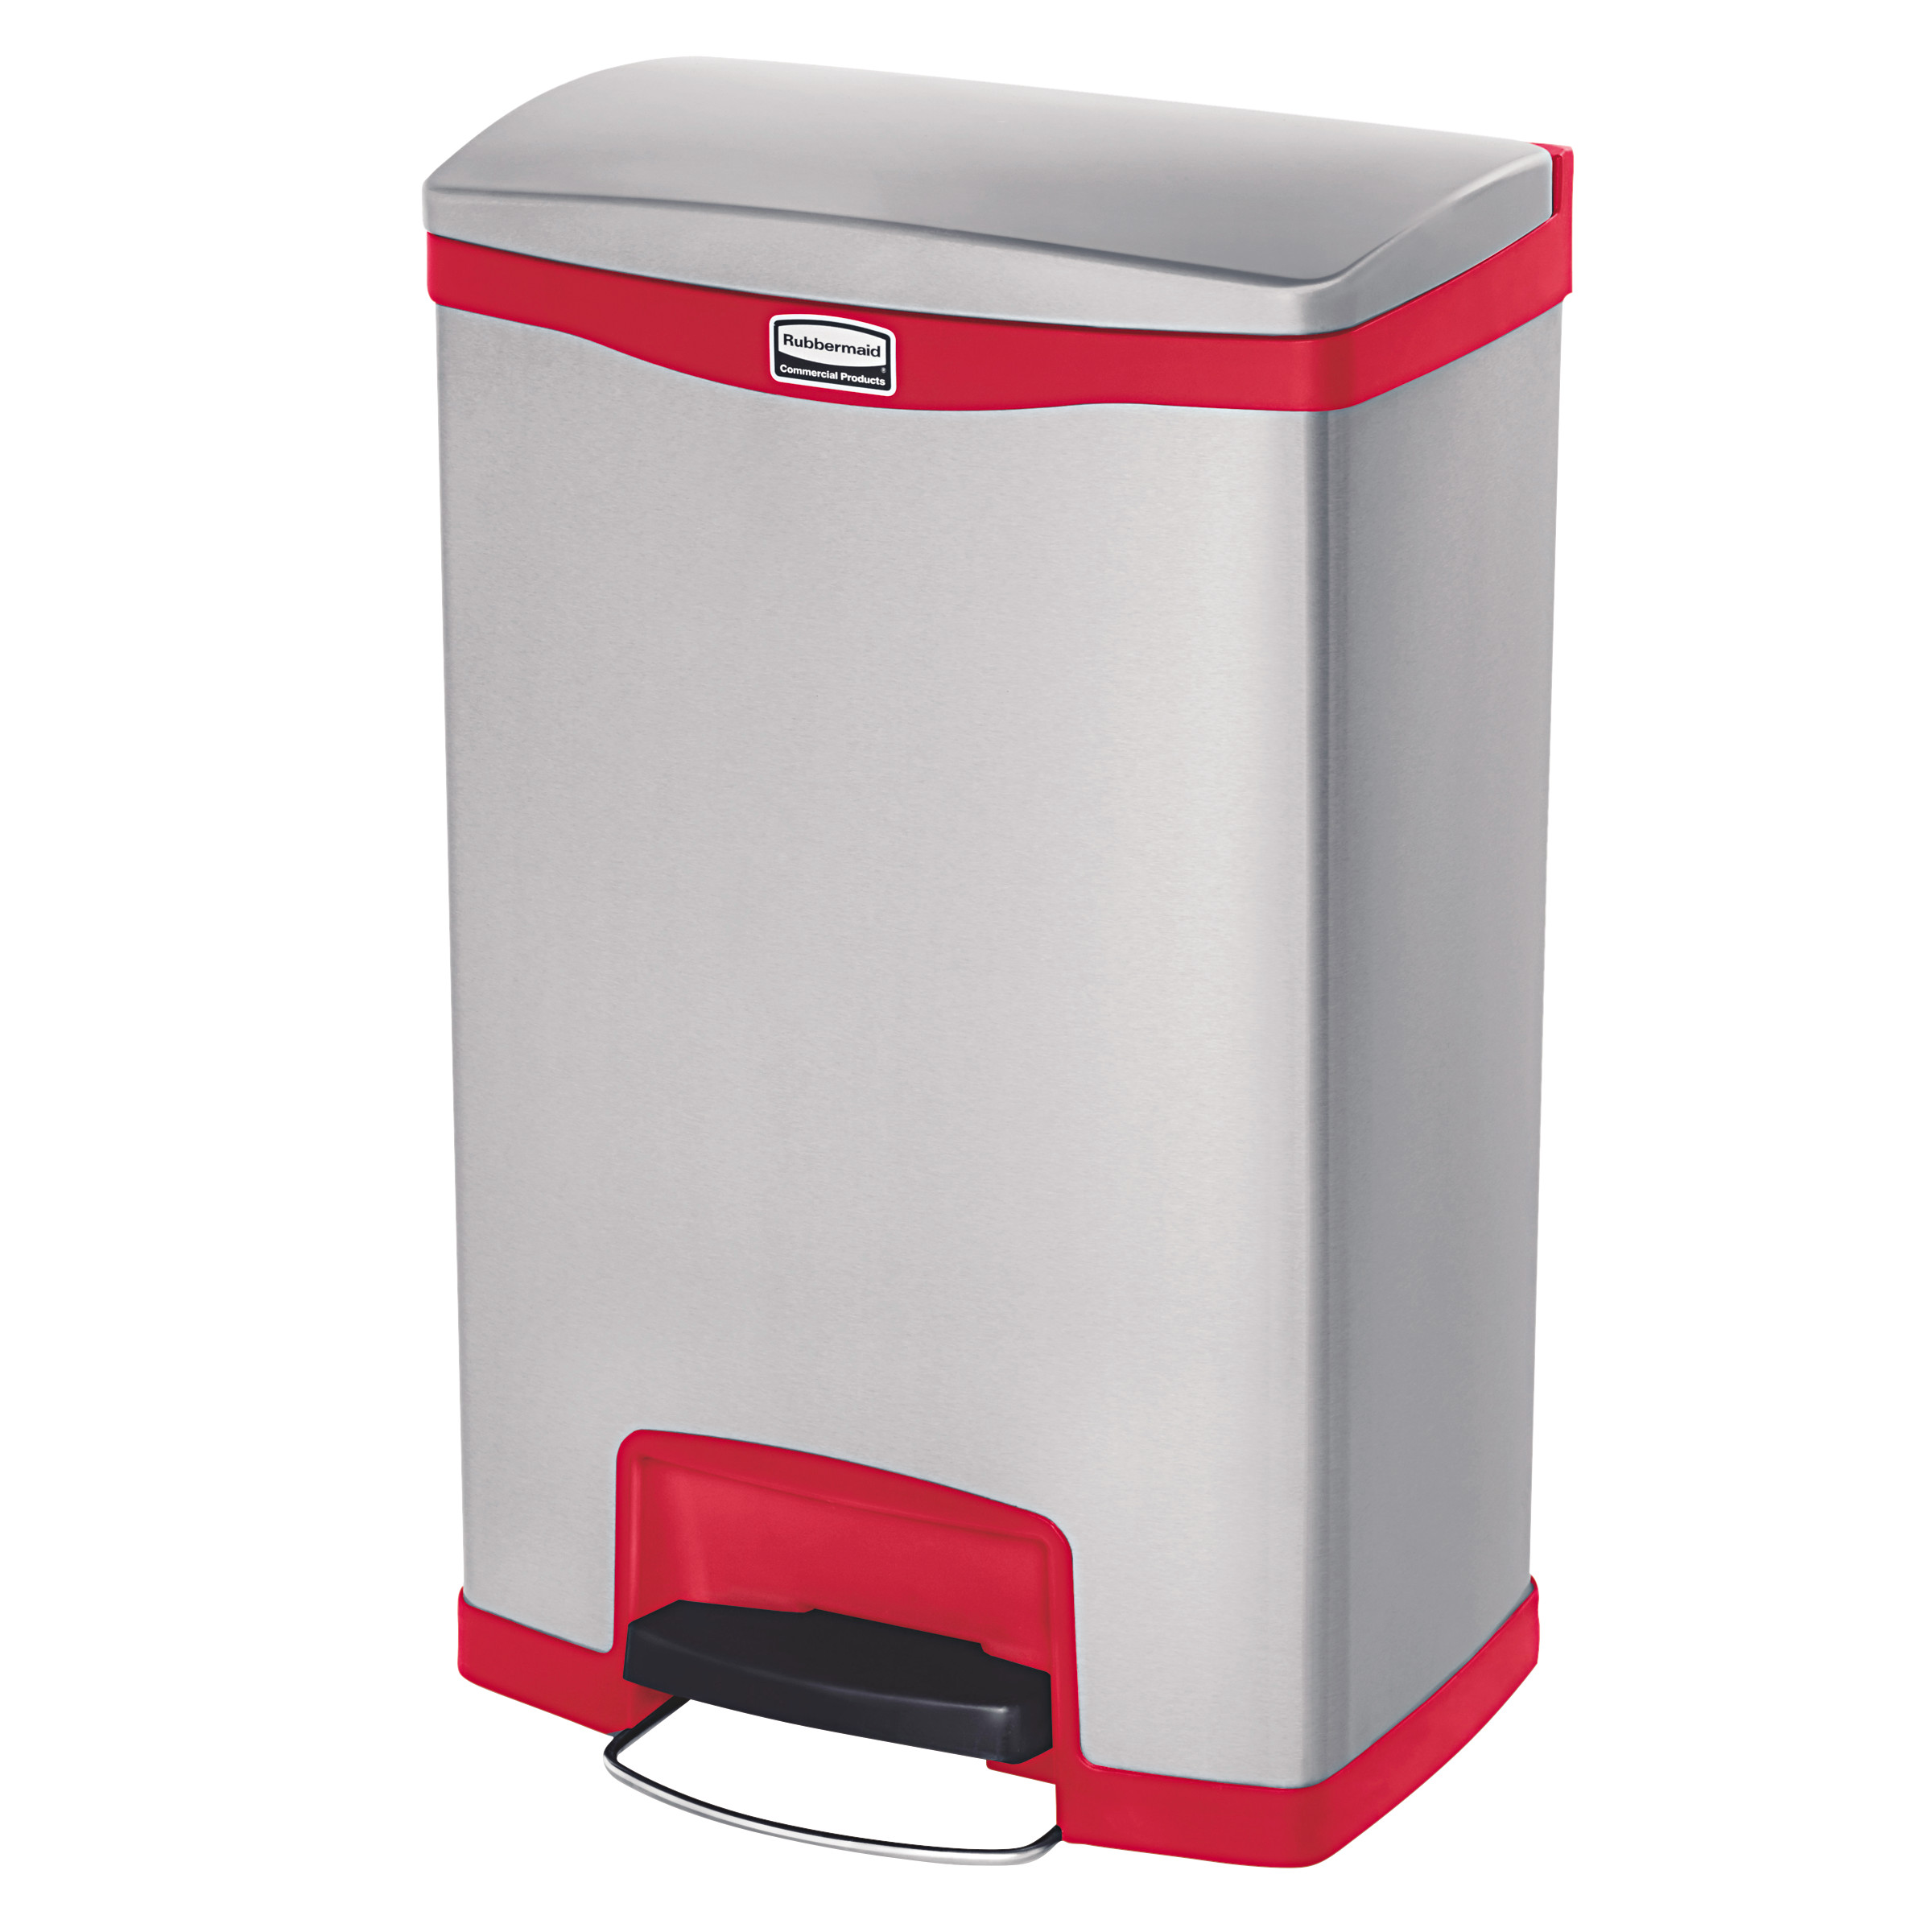 Rubbermaid Commercial Slim Jim Stainless Steel Step-On Container, Front Step Style, 13 gal, Red